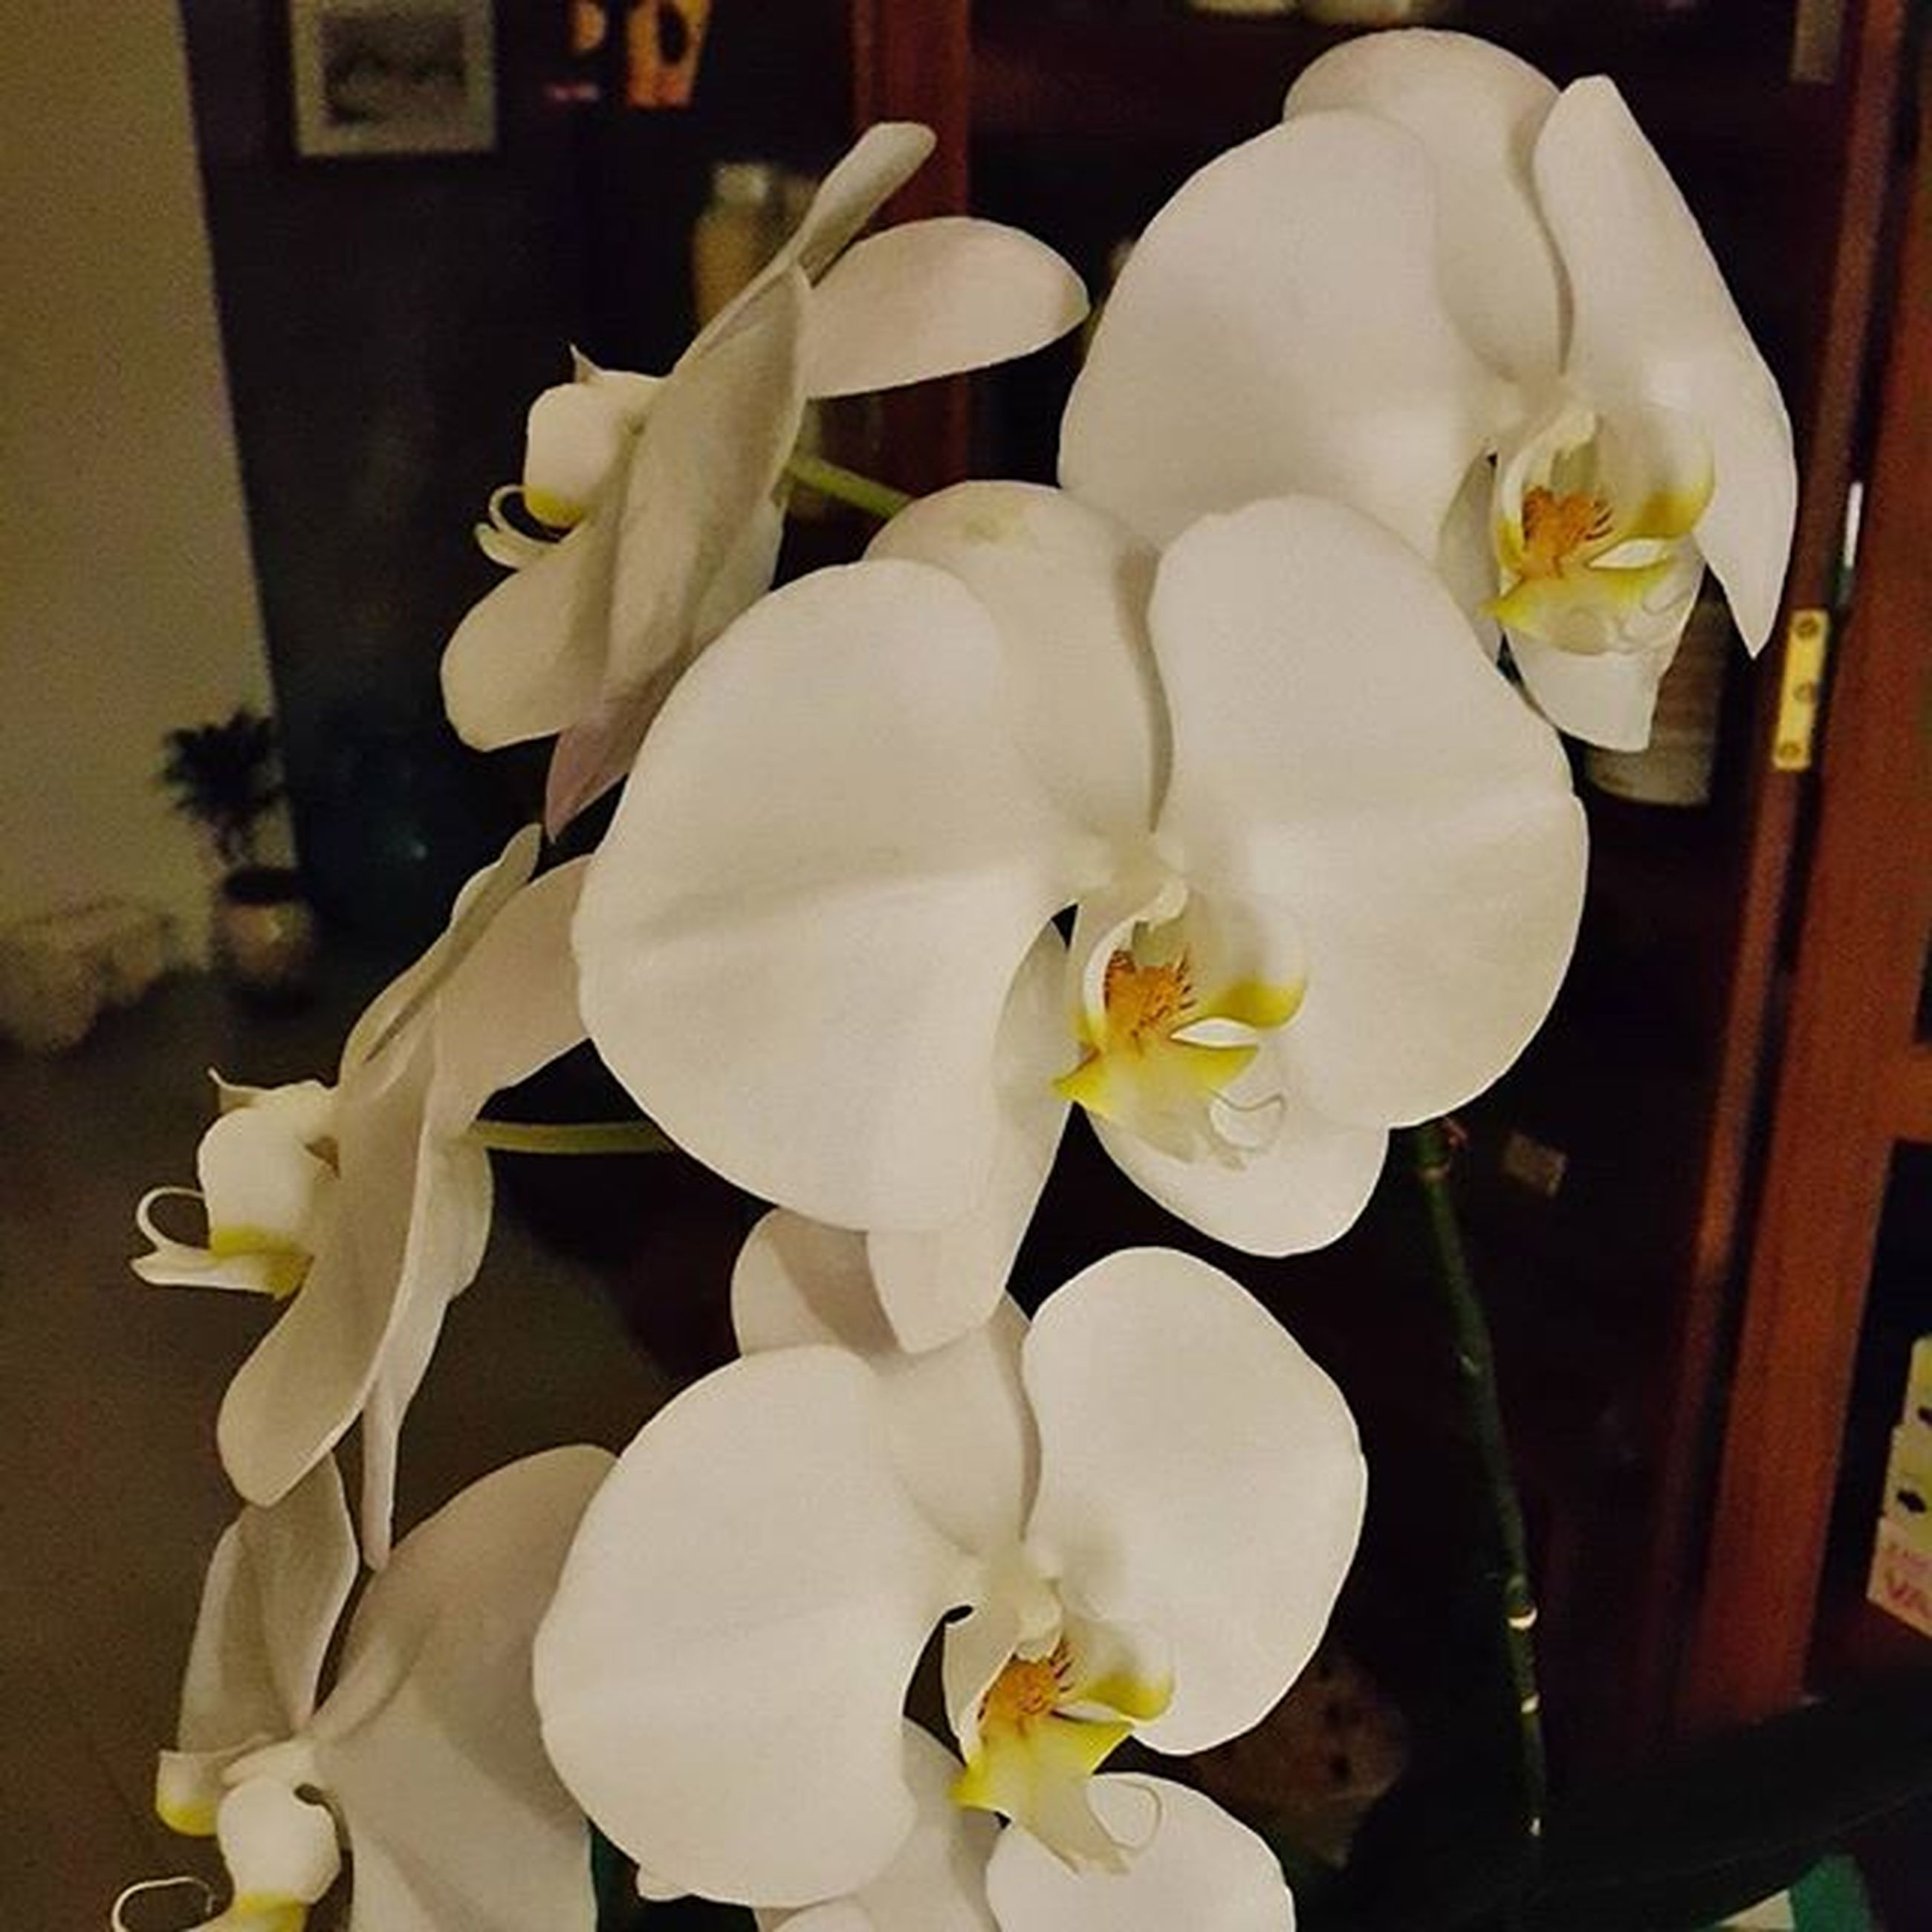 flower, indoors, petal, white color, flower head, fragility, freshness, vase, close-up, beauty in nature, home interior, orchid, white, table, nature, no people, growth, blooming, flower arrangement, plant